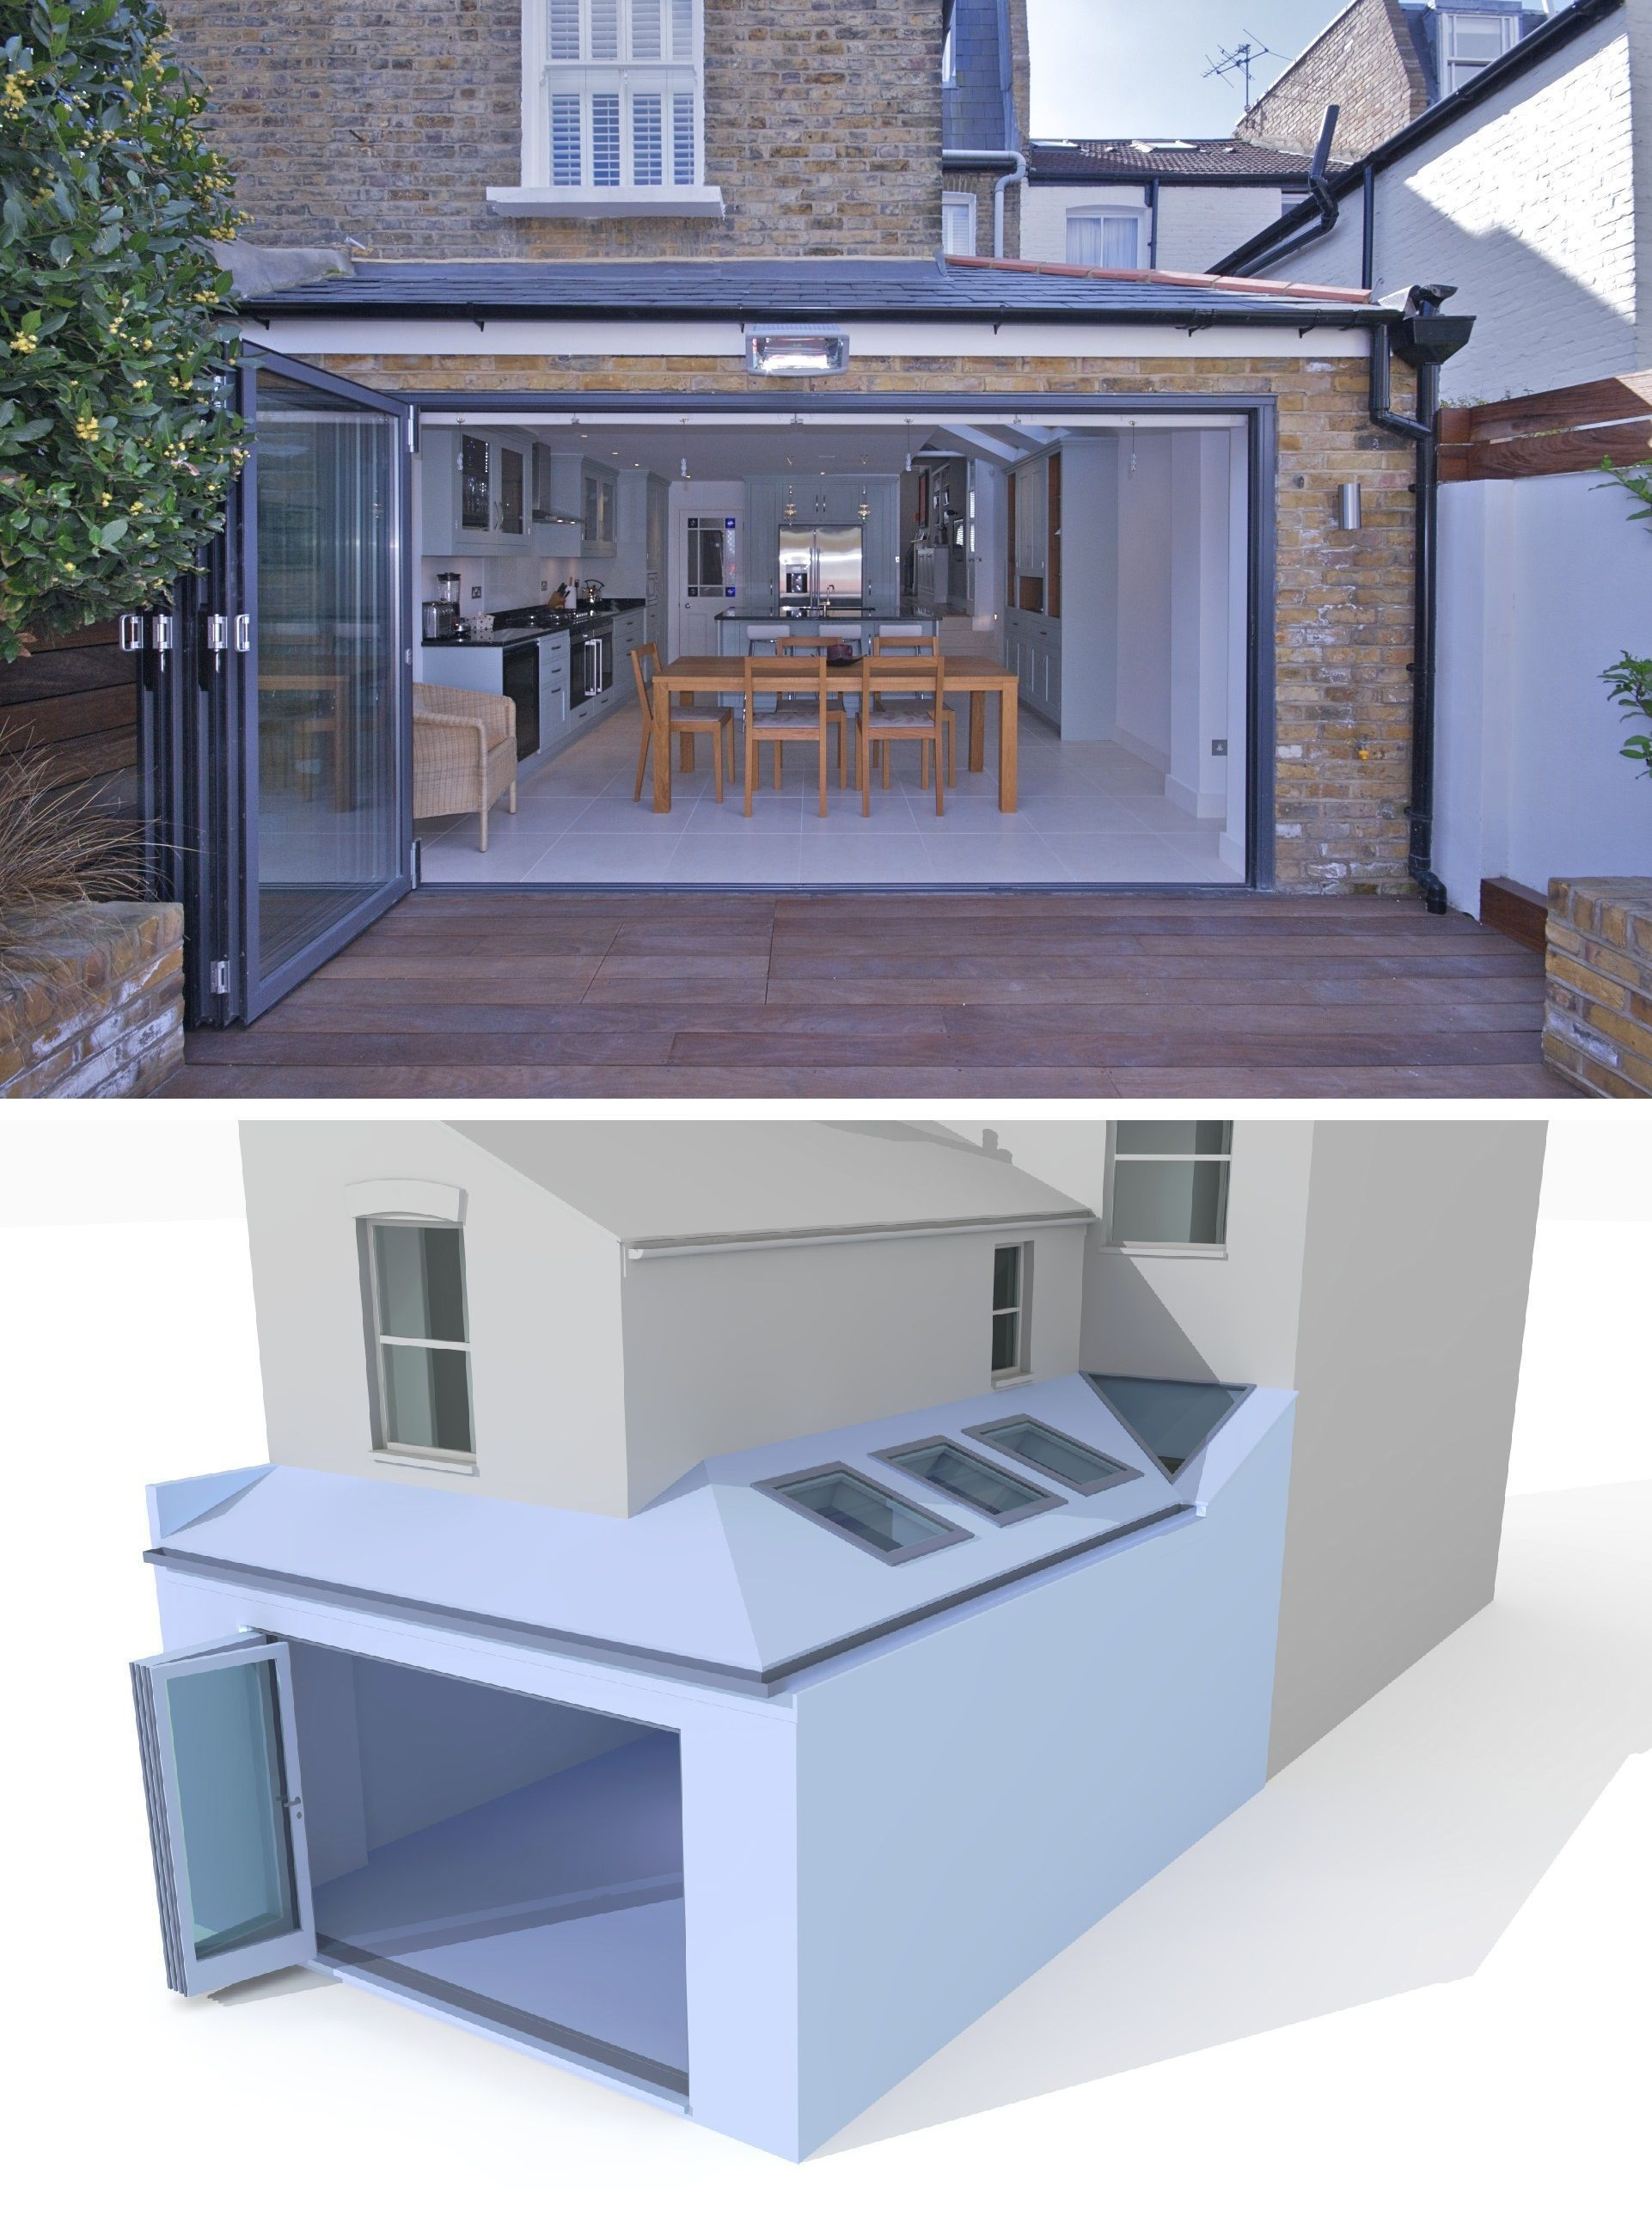 45 Home Terrace Garden Inspirations You Must Like It Neat Fast Flat Roof House Designs Flat Roof House House